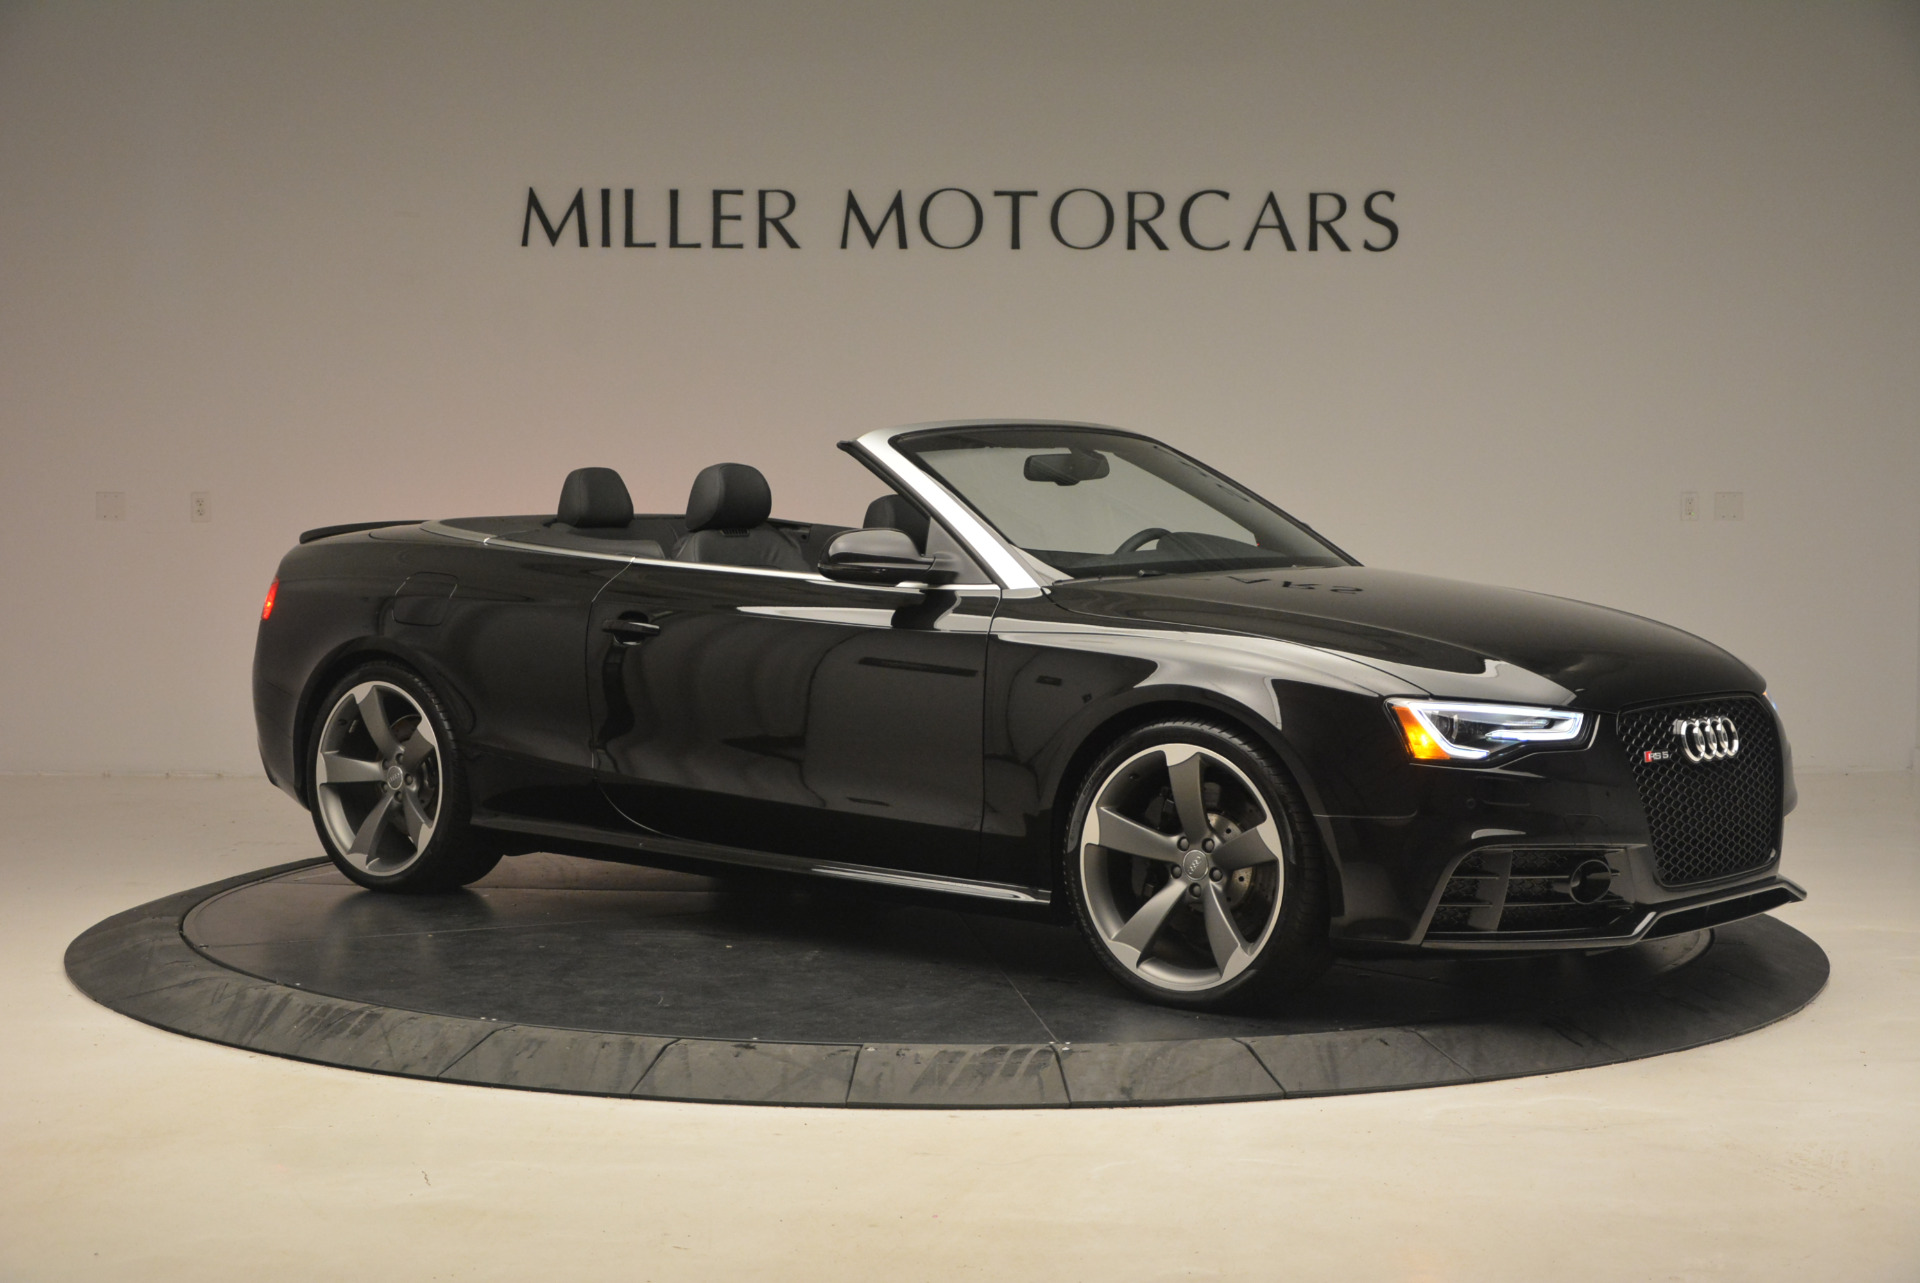 Used 2014 Audi RS 5 quattro For Sale In Greenwich, CT 1149_p10